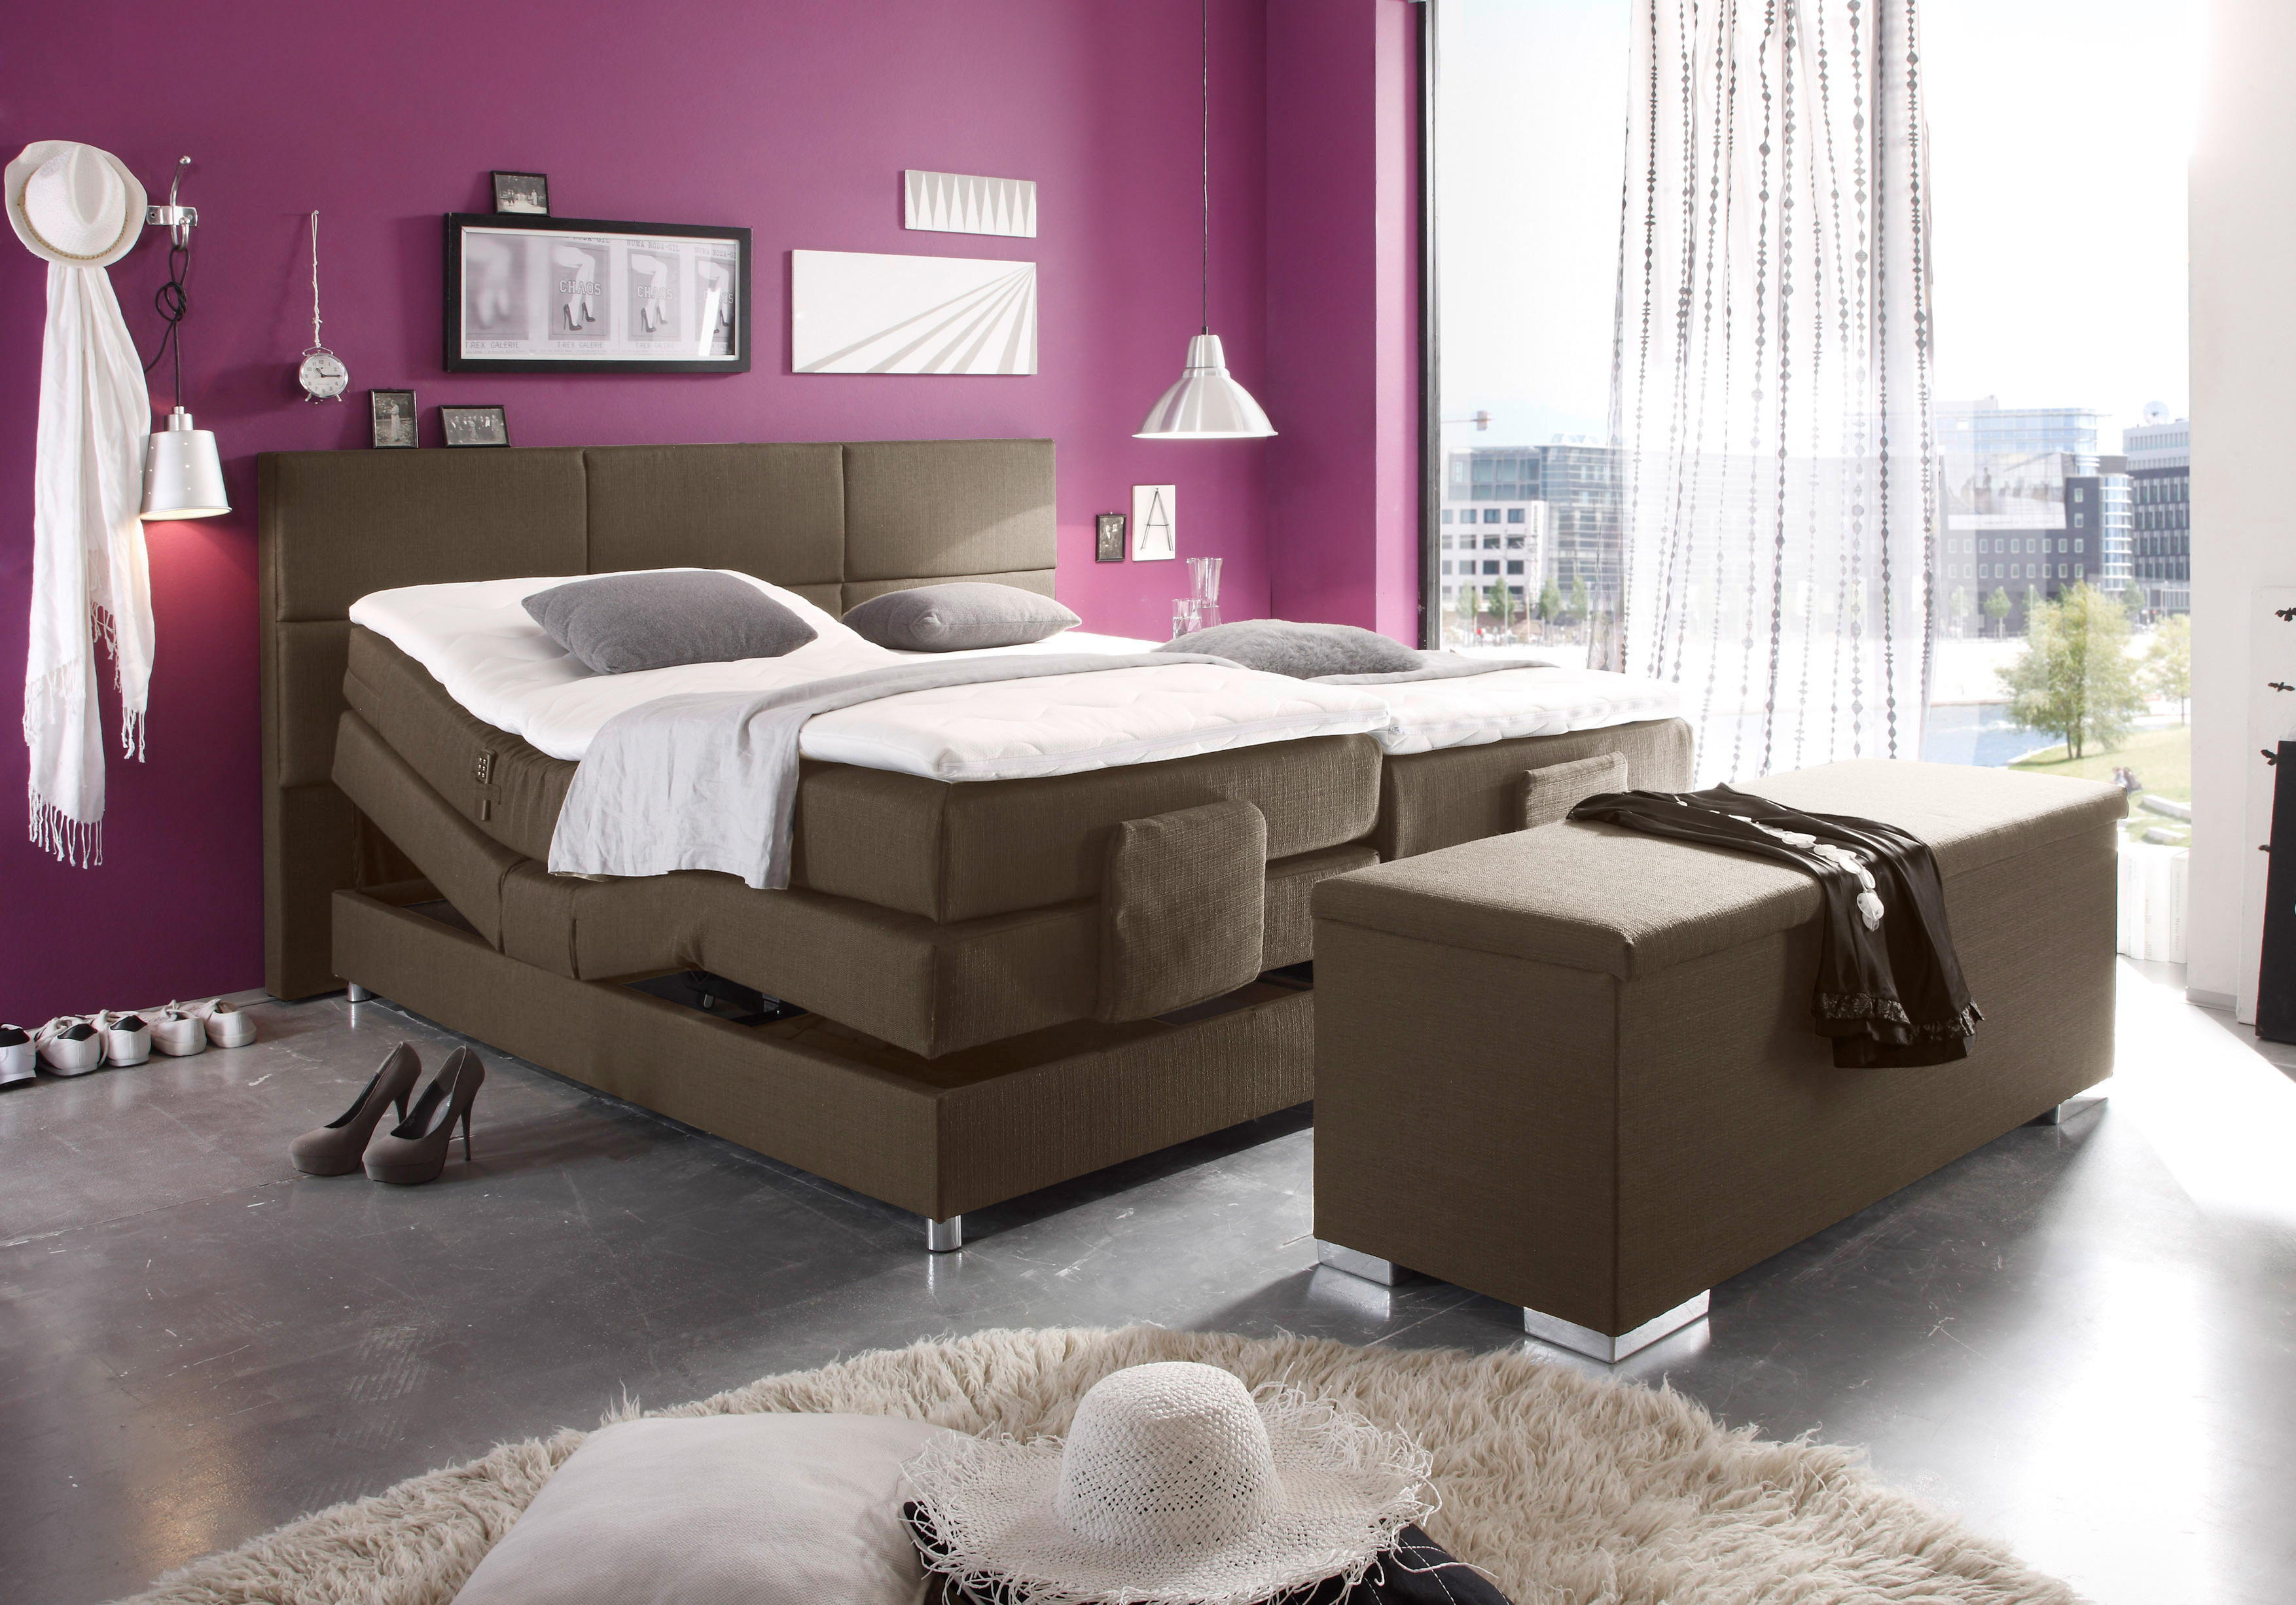 black red white boxspringbett chicago mit kopf und fu teilverstellung mit topper m bel letz. Black Bedroom Furniture Sets. Home Design Ideas